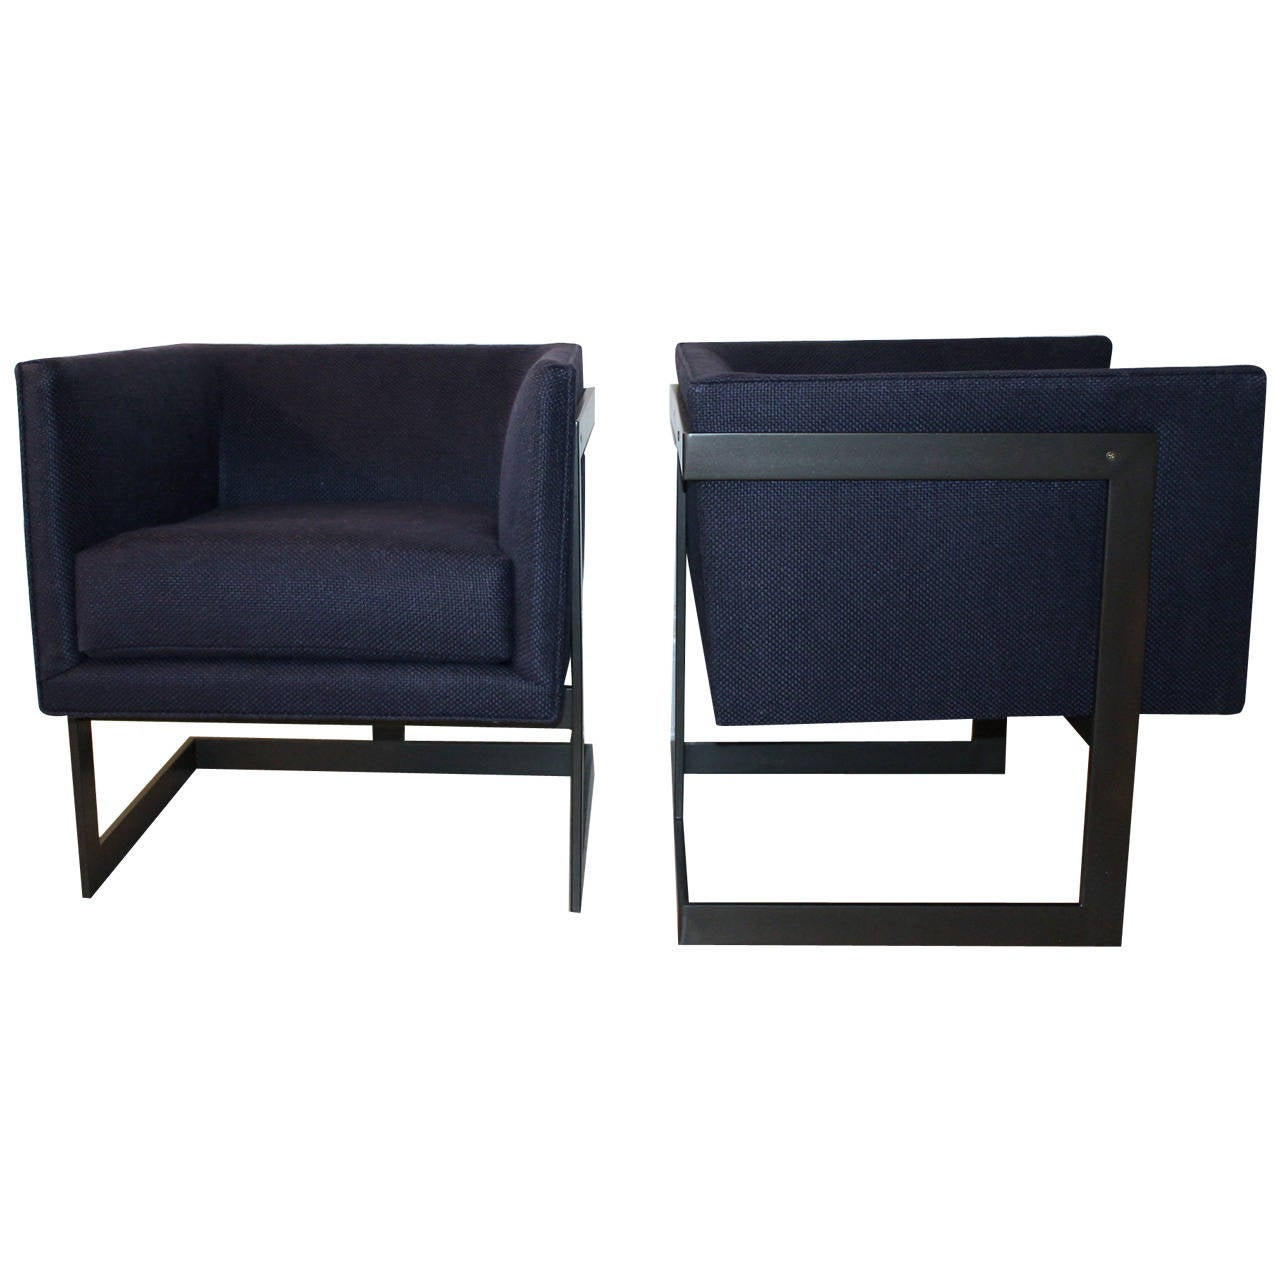 "Pair of Milo Baughman ""Cube"" Chairs For Sale at 1stdibs"